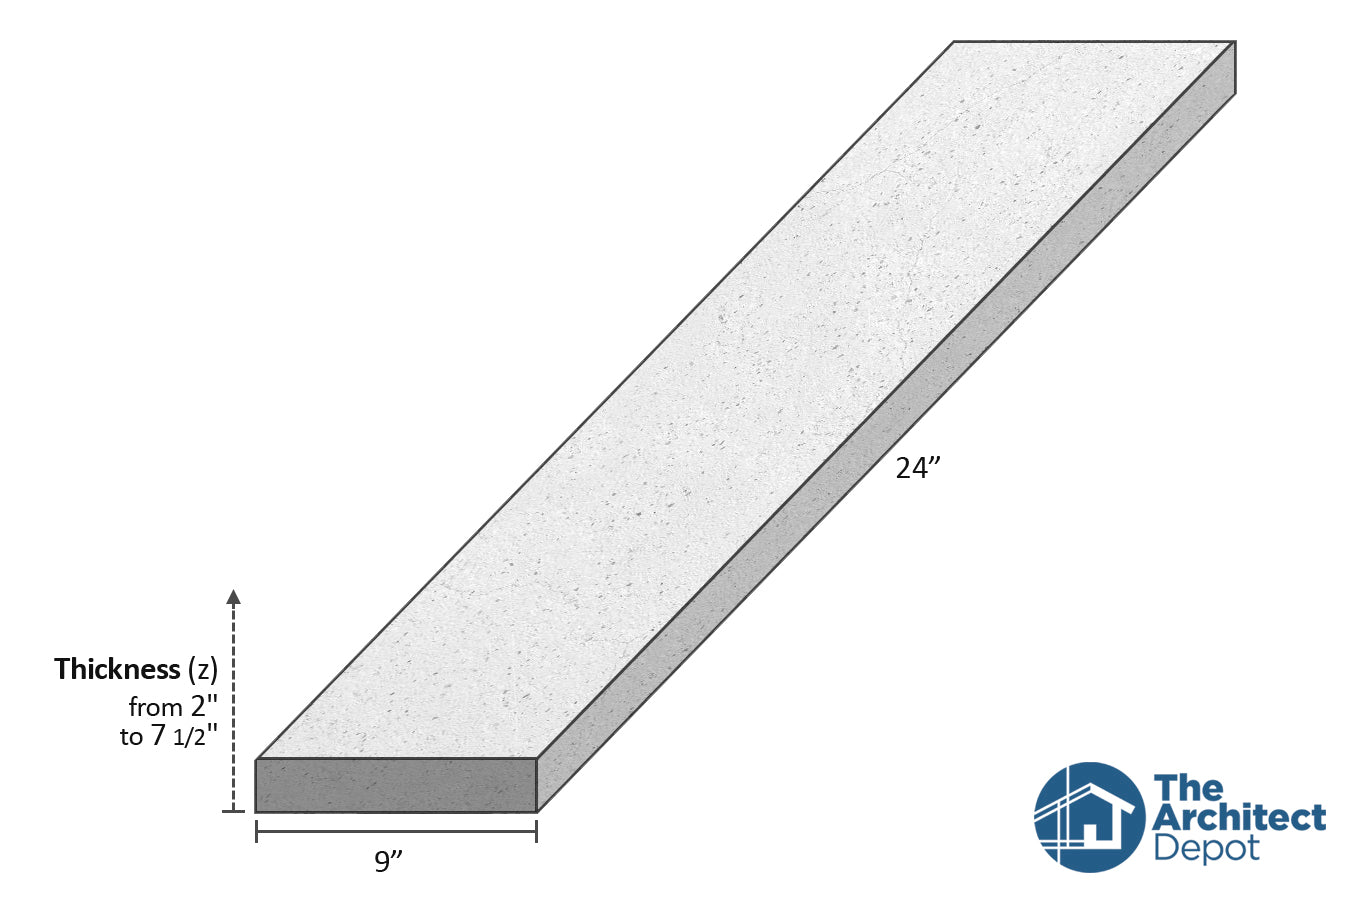 decorative concrete flat band moulding 24 x 9 use the decorative flat band moulding as an exterior moulding and give volume to the architecture of your building concrete flat bands can be use as a exterior window sill or exterior window trim as a simple crown molding decoration